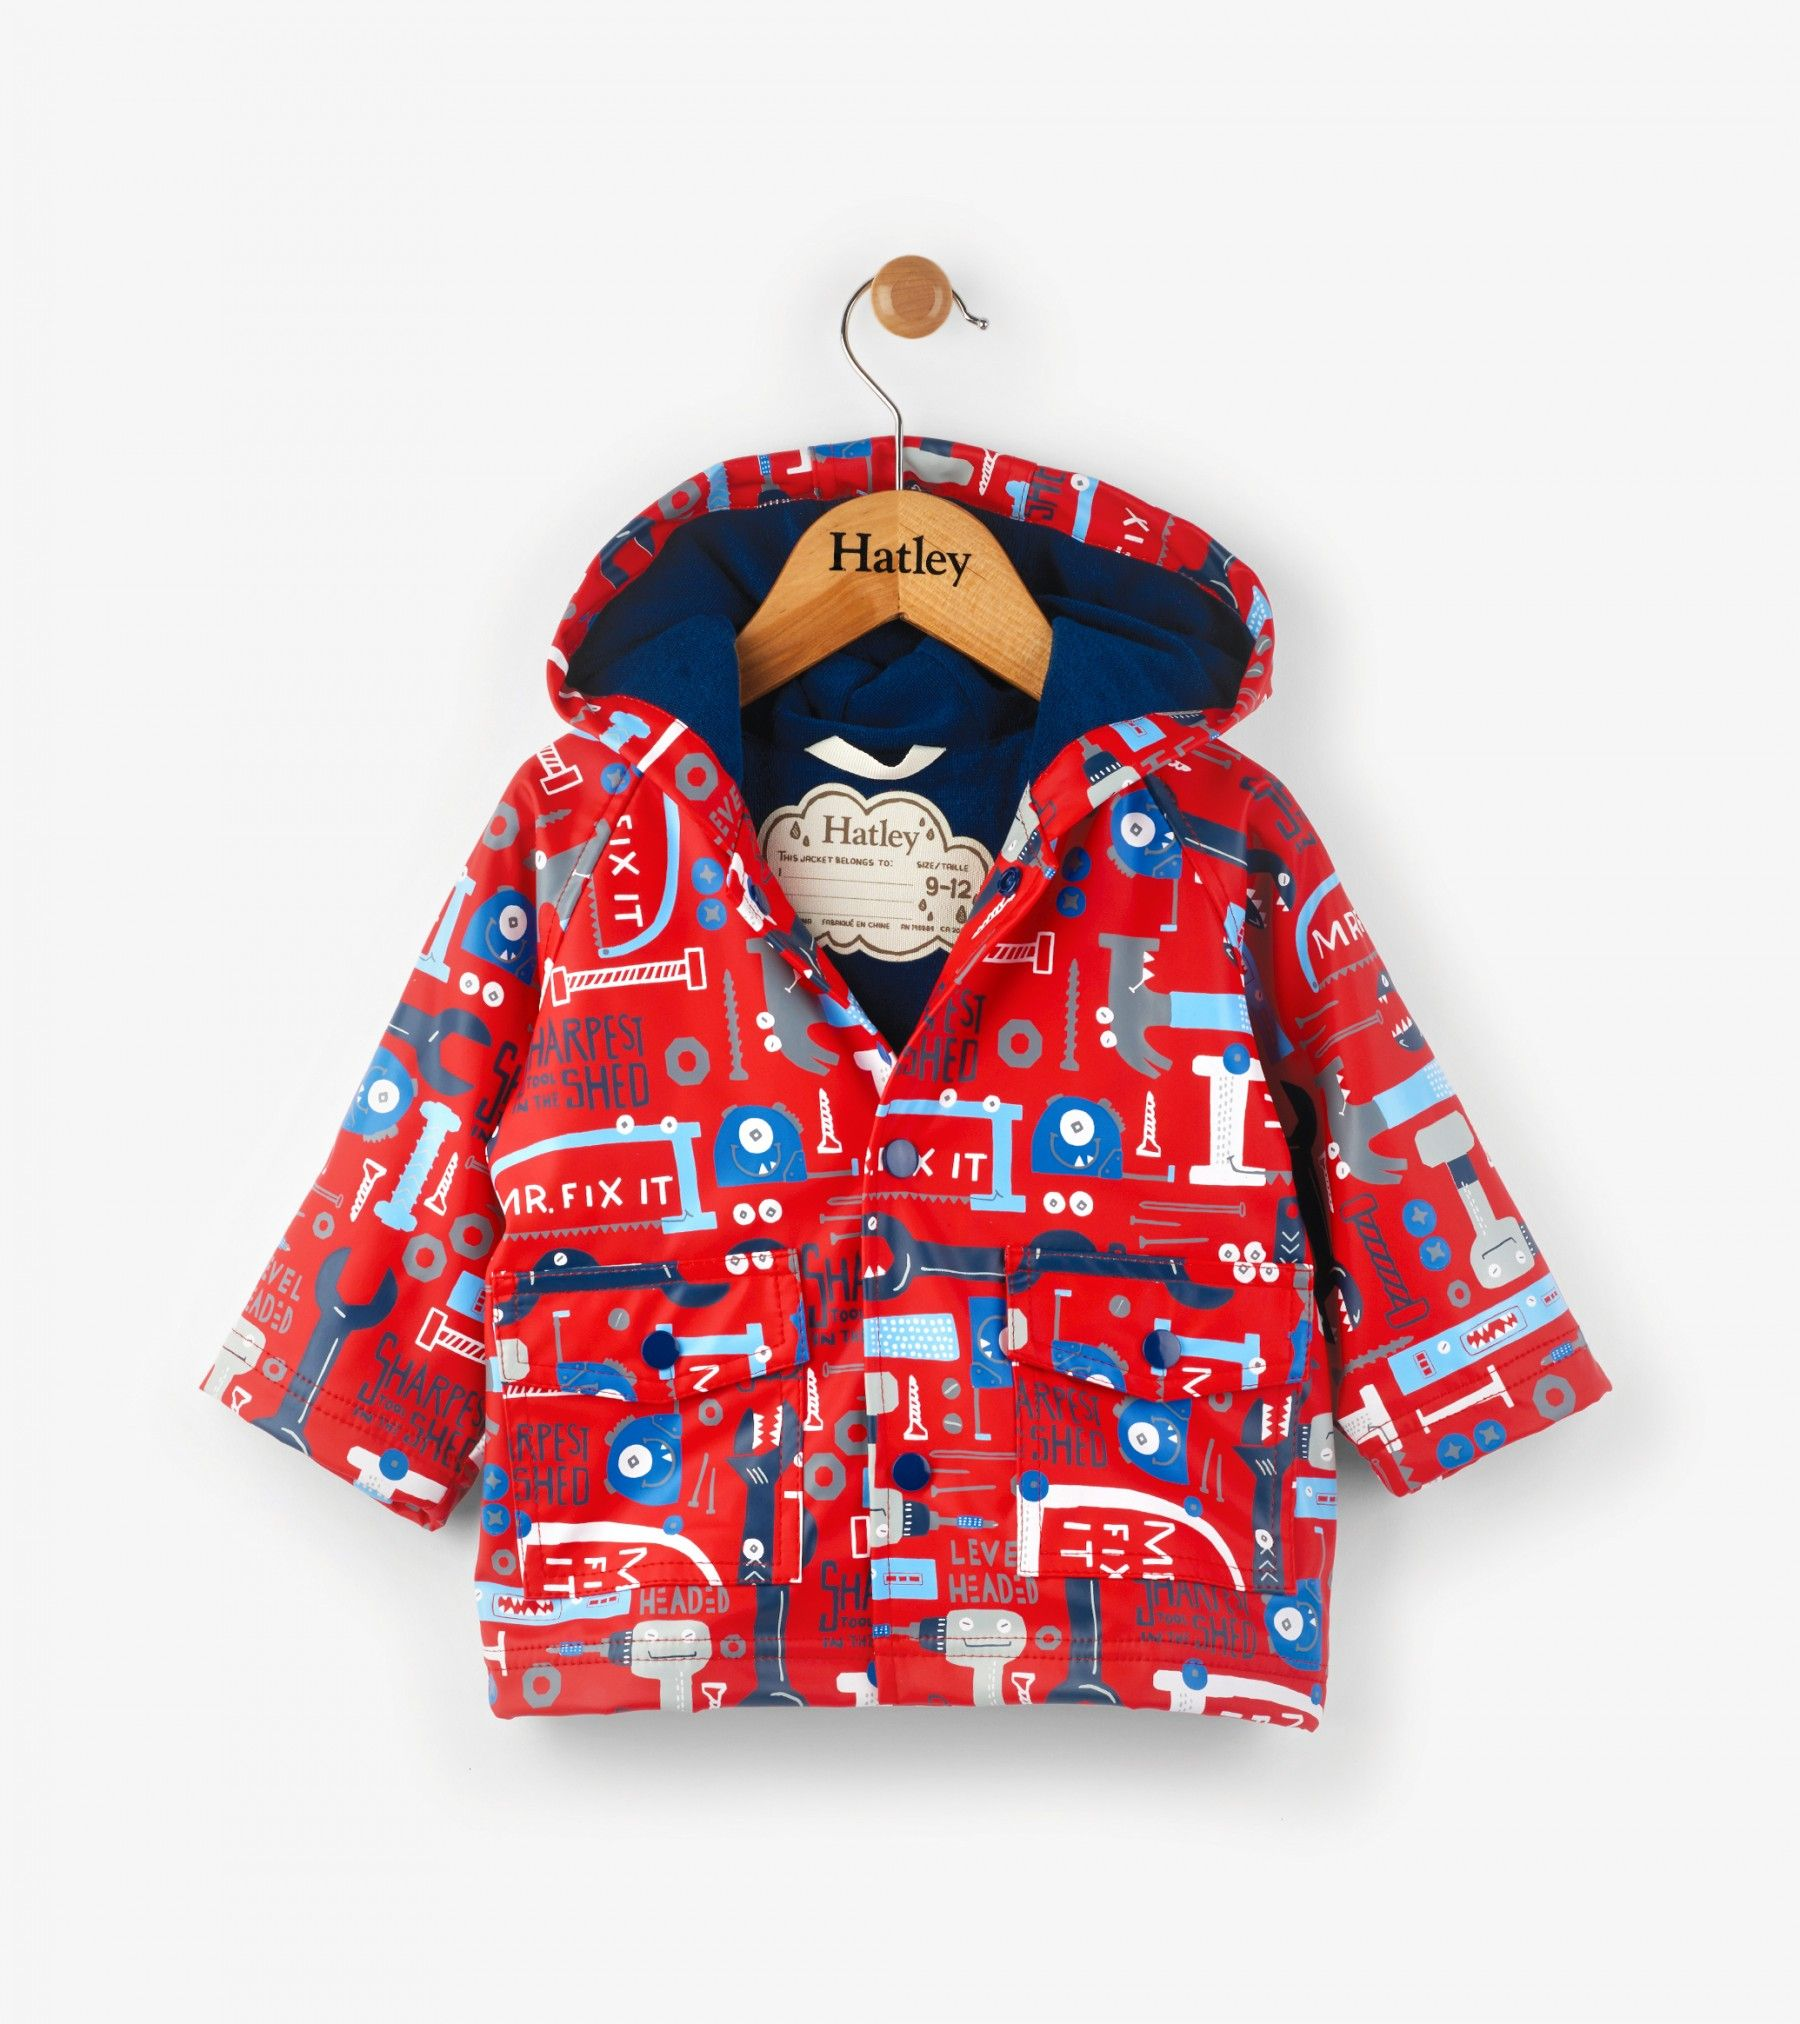 04a6e9a03 Mr. Fix It Baby Raincoat - Baby Boys - Shop All - Rainwear